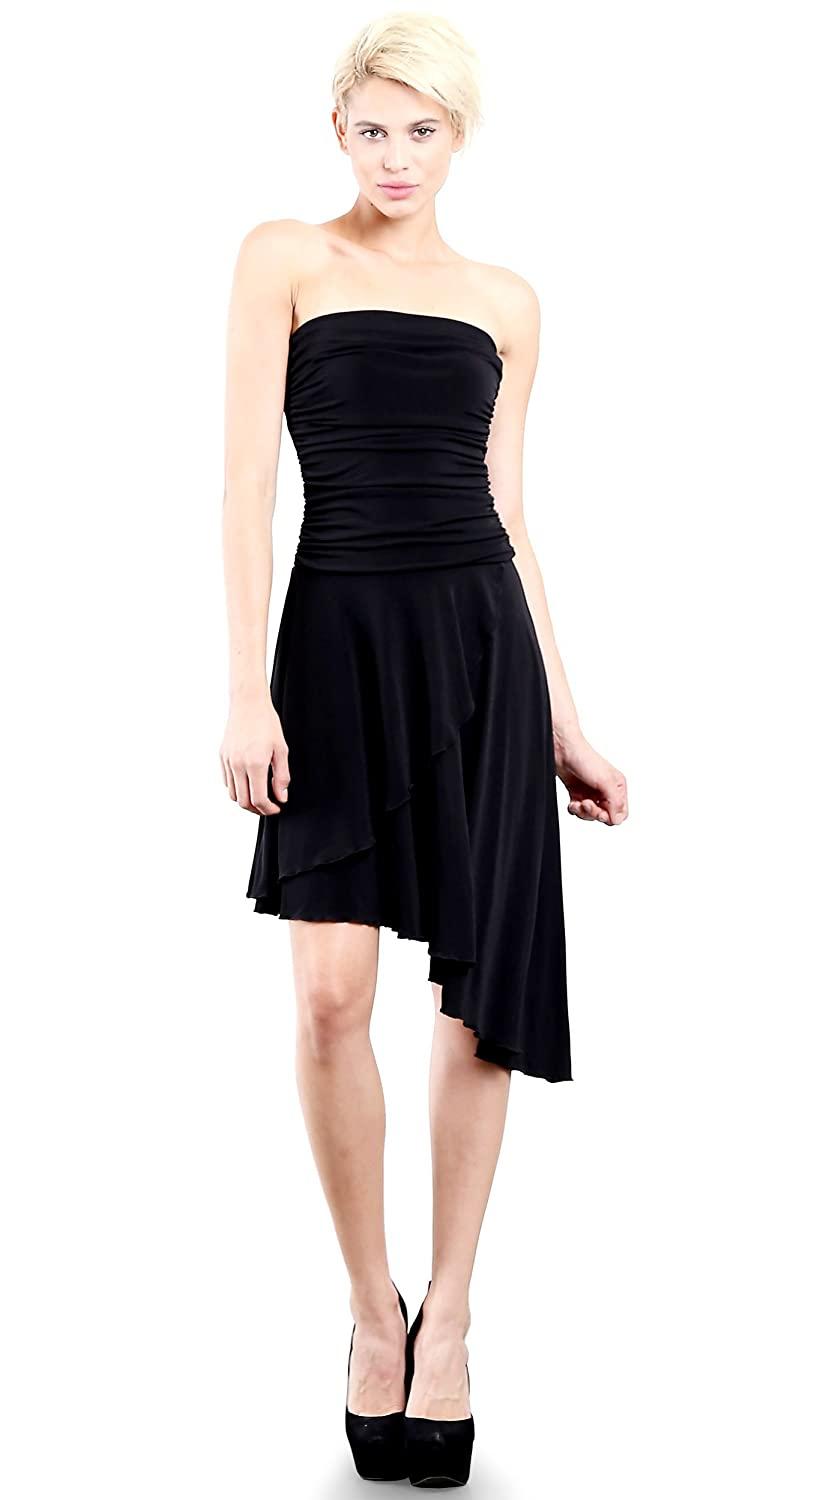 8b2f32caa6 EVANESE Women s Cocktail Party Strapless Tube Dress With Asymmetrical Skirt  M